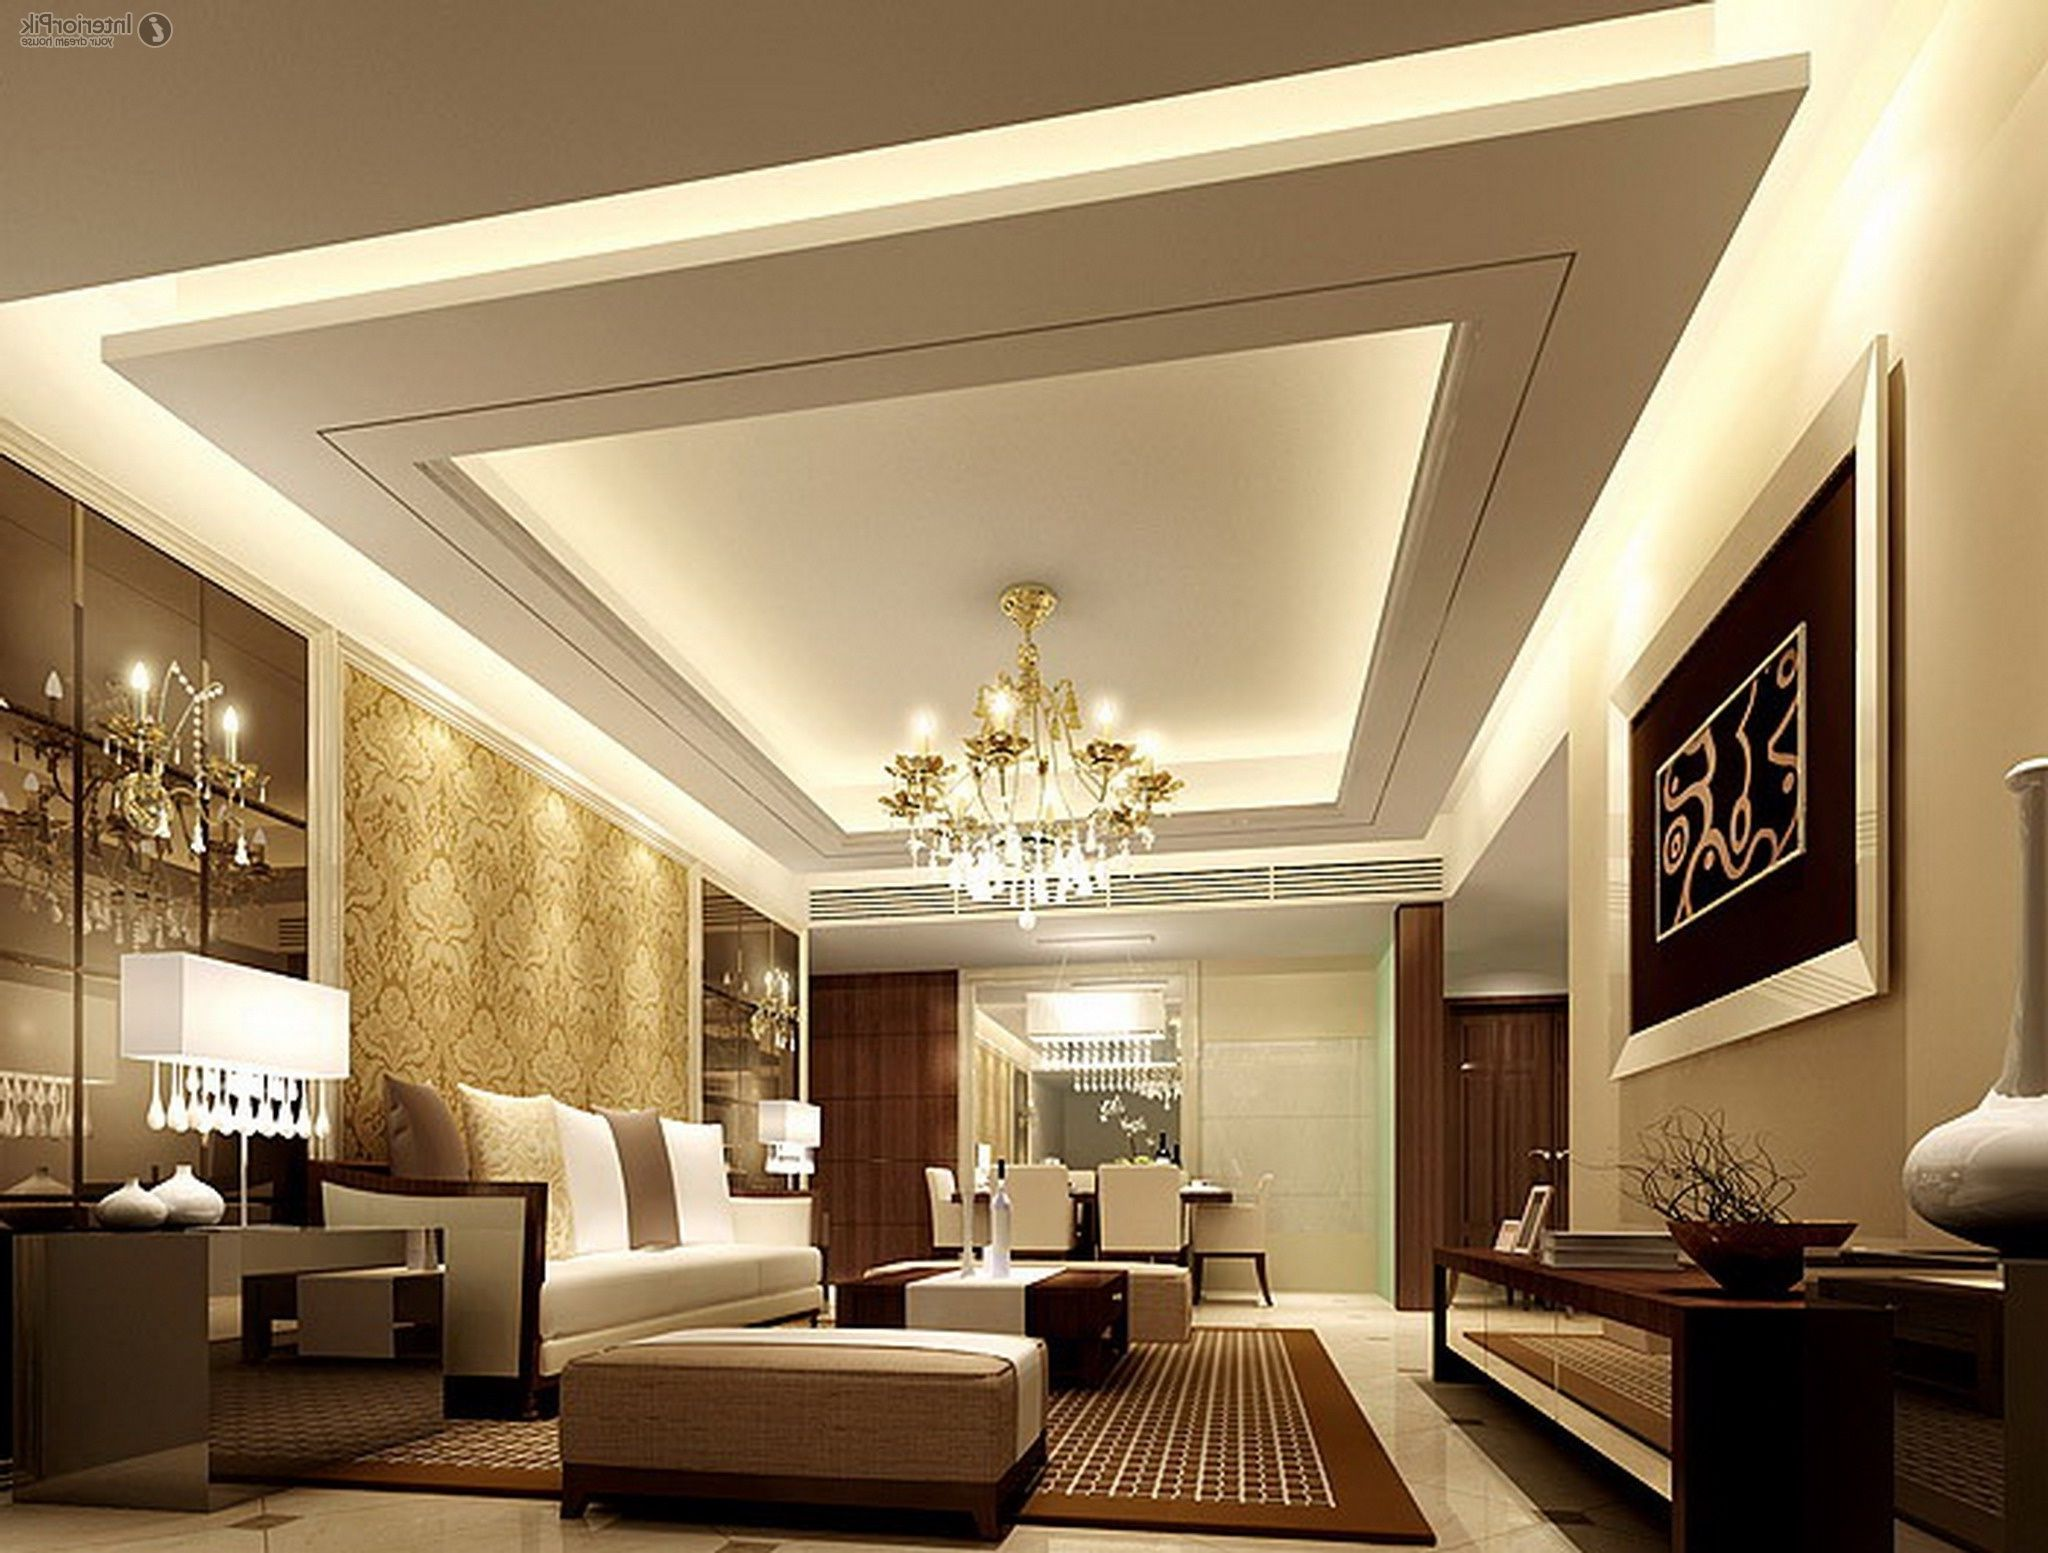 Living Room Ceiling Light Contemporary Led Ceiling Lights For Small Living Room Interior